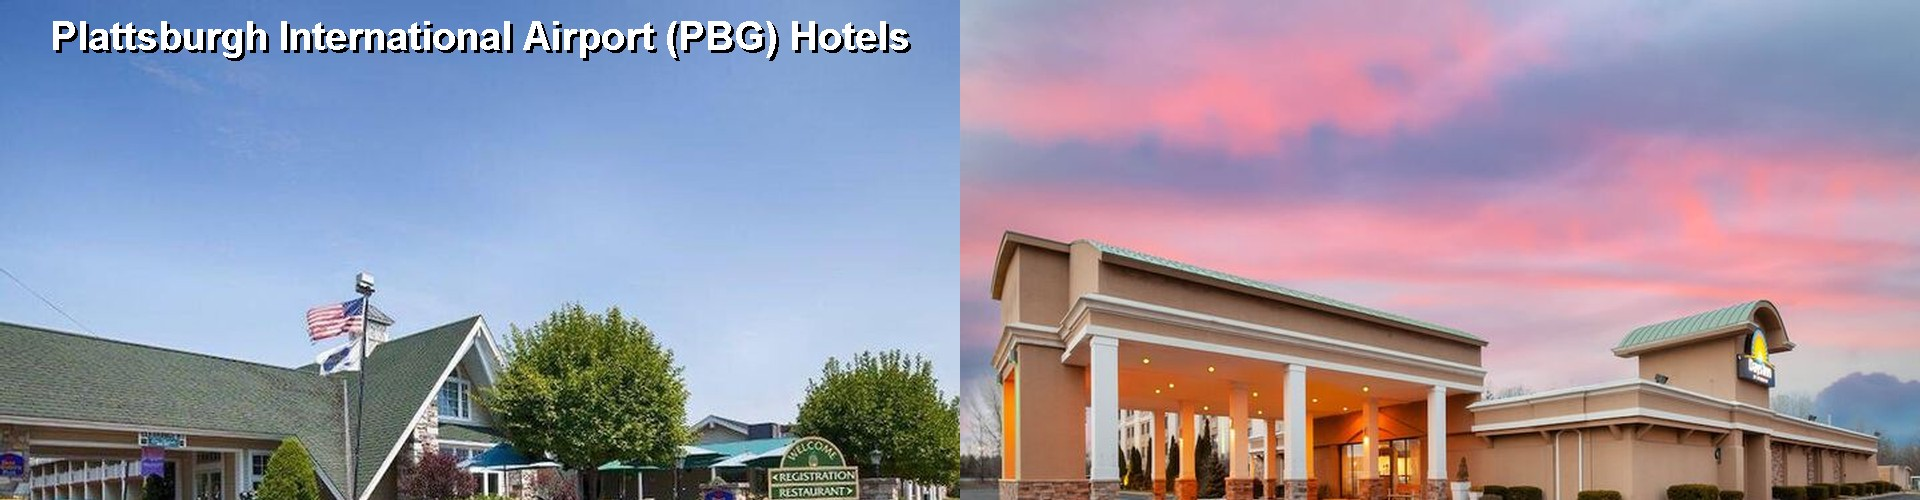 5 Best Hotels near Plattsburgh International Airport (PBG)